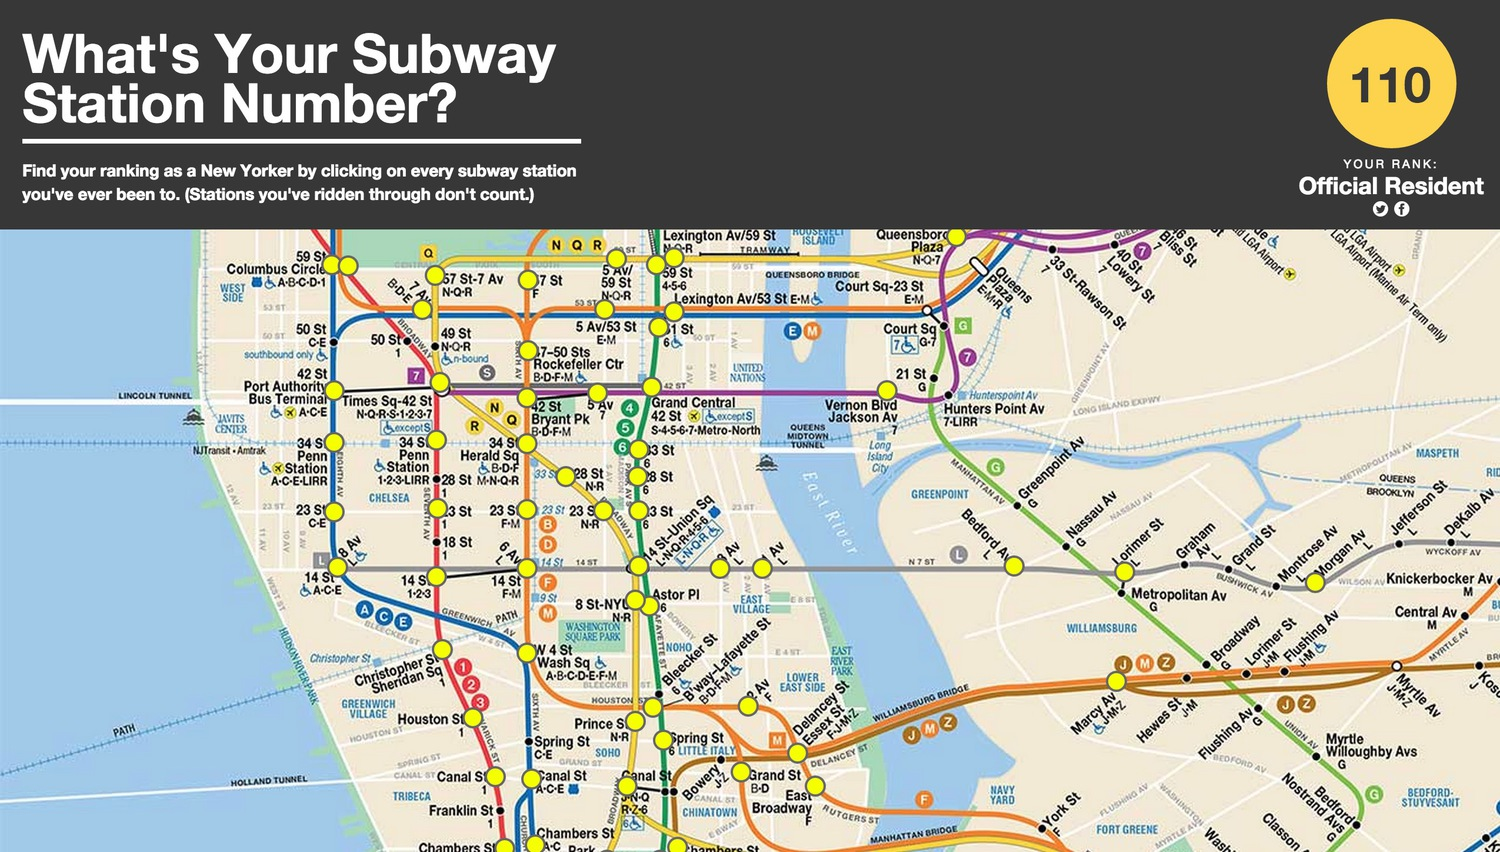 Nyc Subway Station Maps.What S Your Subway Station Number A Website To Quiz How New York You Really Are Viewing Nyc